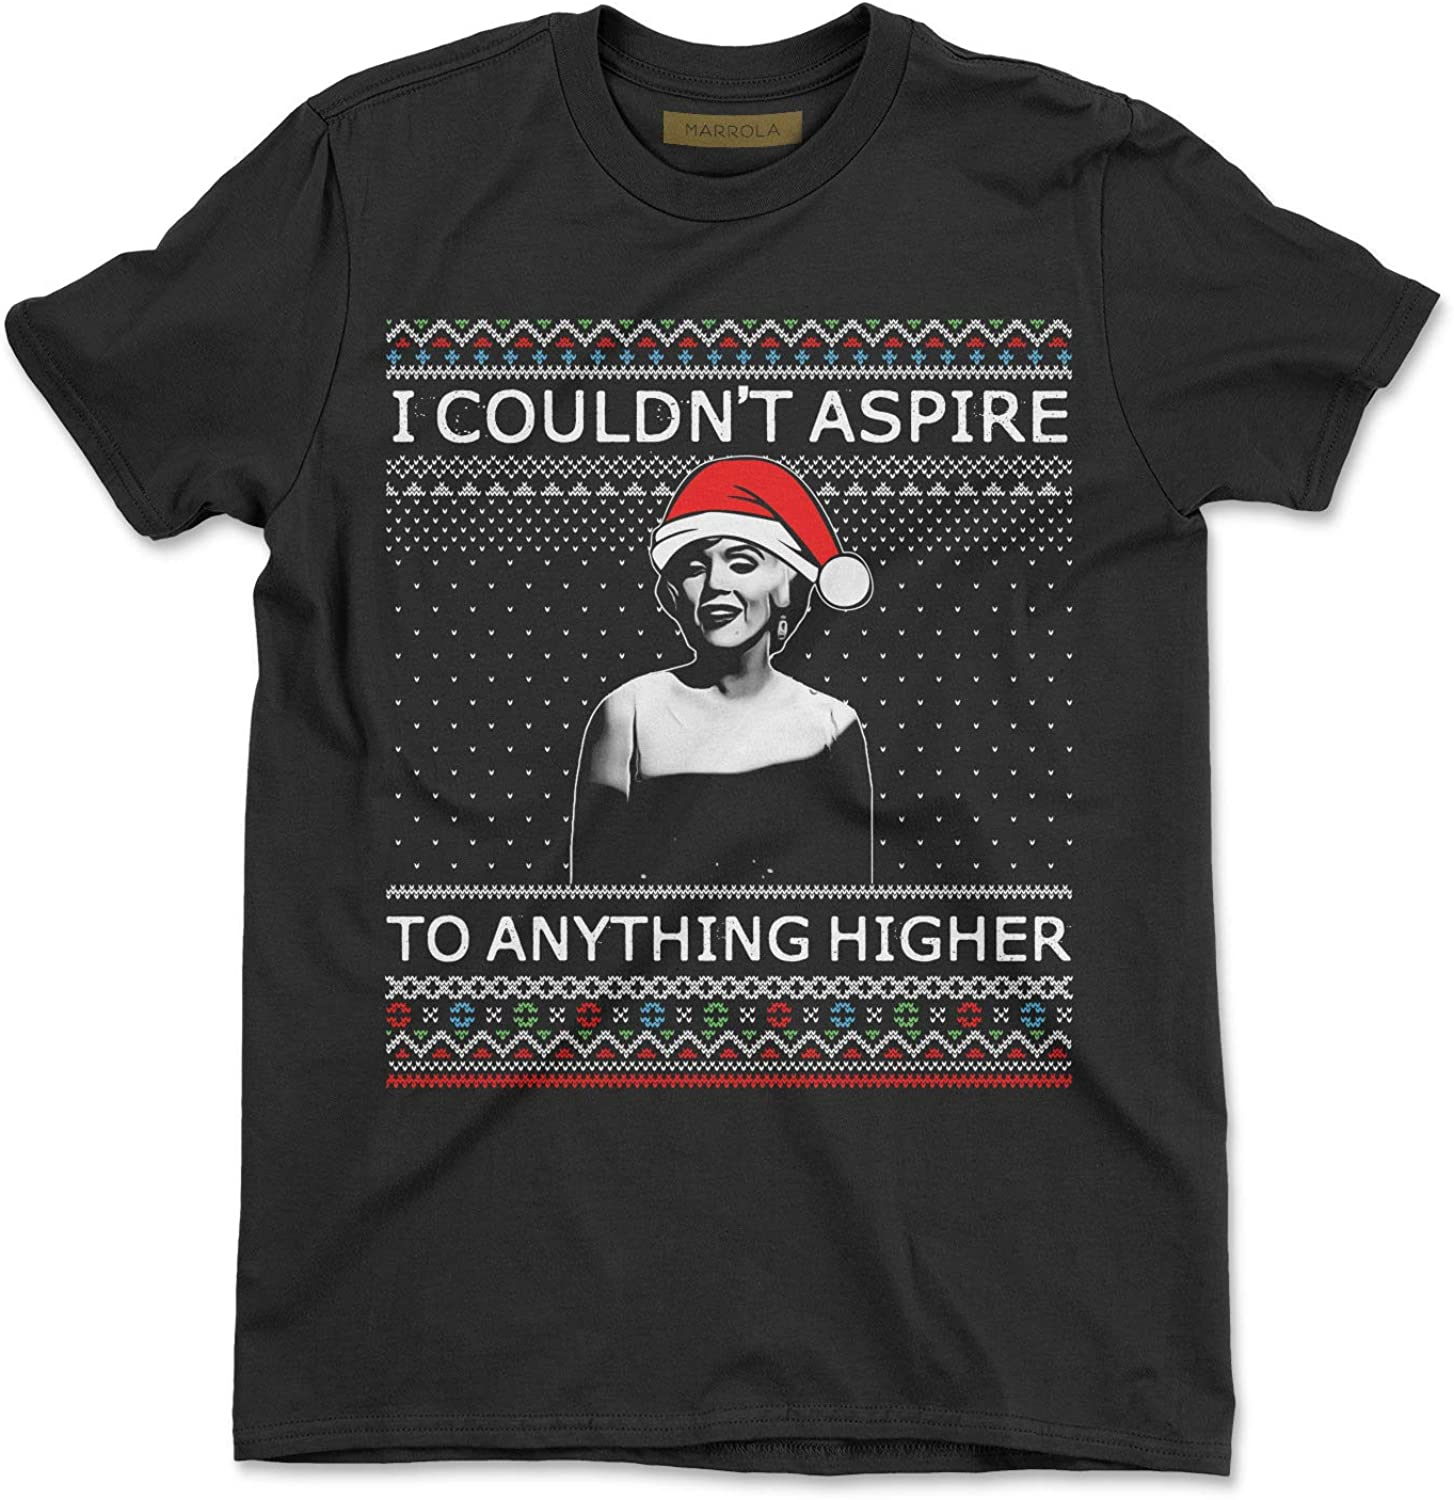 Marrola I Couldnt Aspire to Anything Higher Ugly Christmas T-Shirt